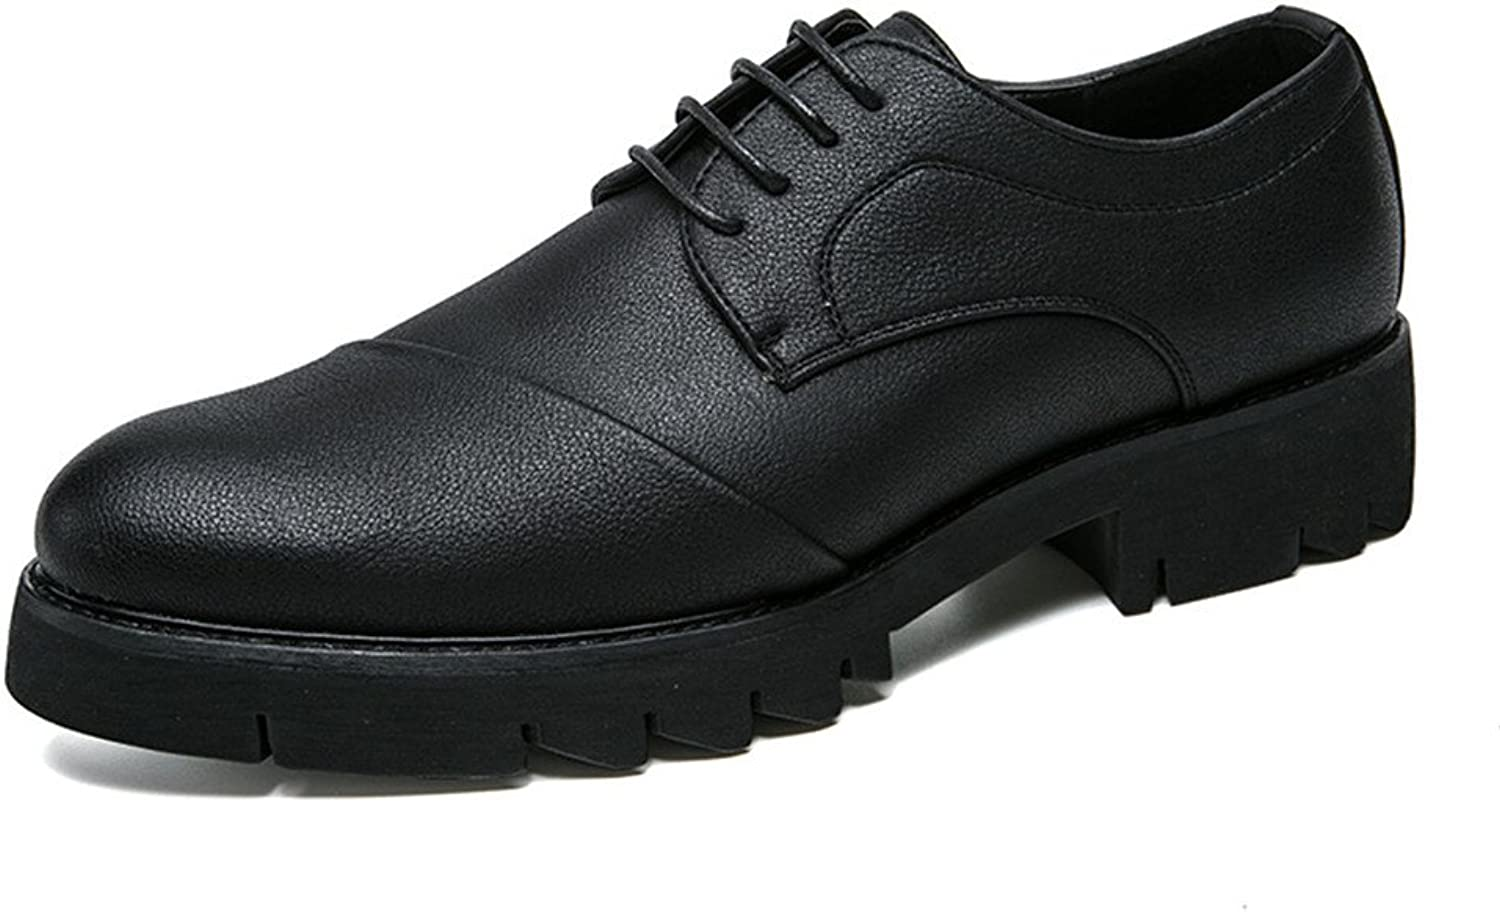 shoes Men's Business Oxford Fashion Simple Classic Soft Comfortable Round Toe Formal shoes Leather shoes